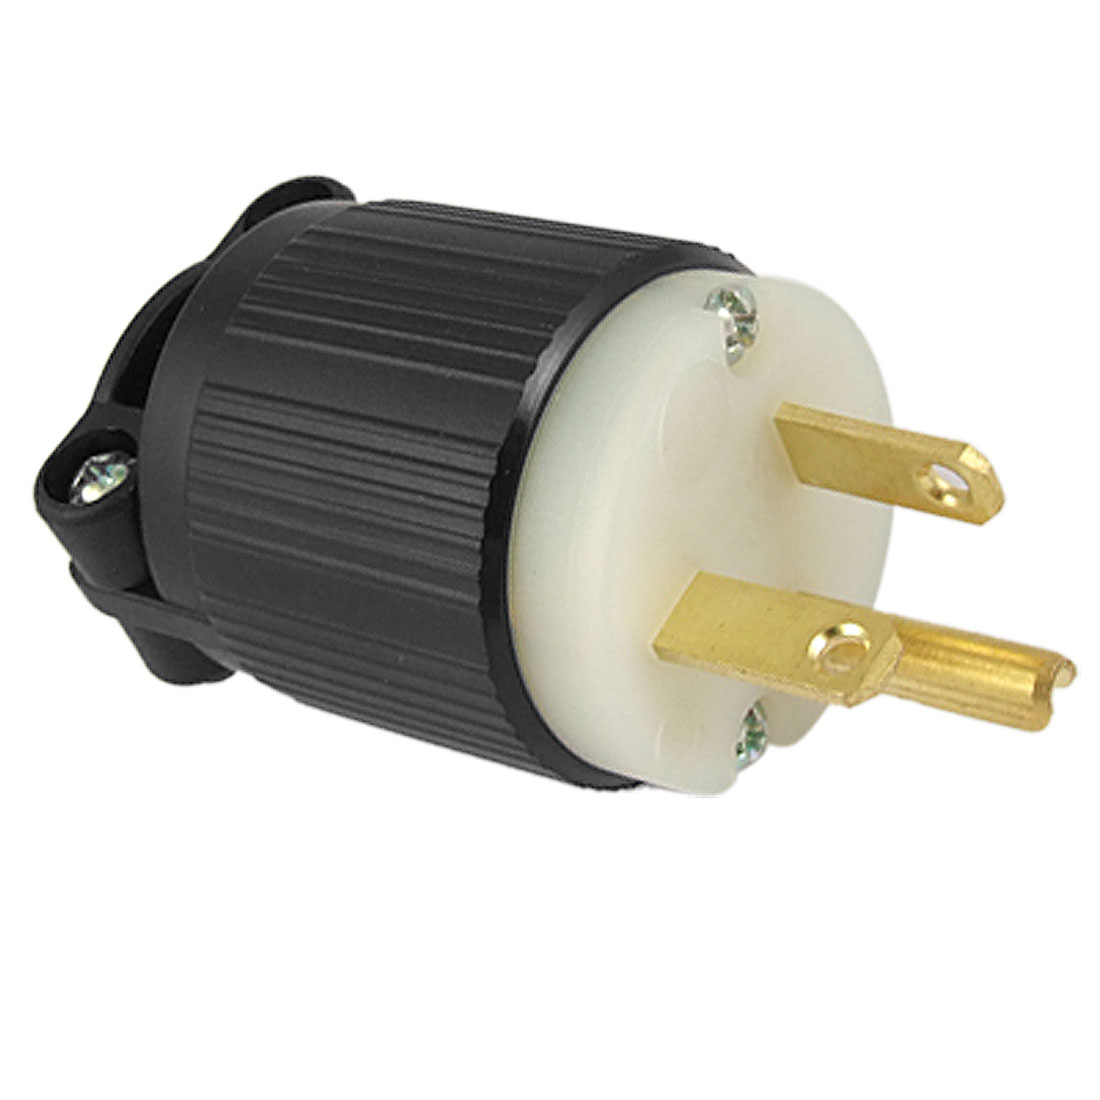 J-726 AC 250V 20Amp Straight Male Electrical Plug Nema 6-20P